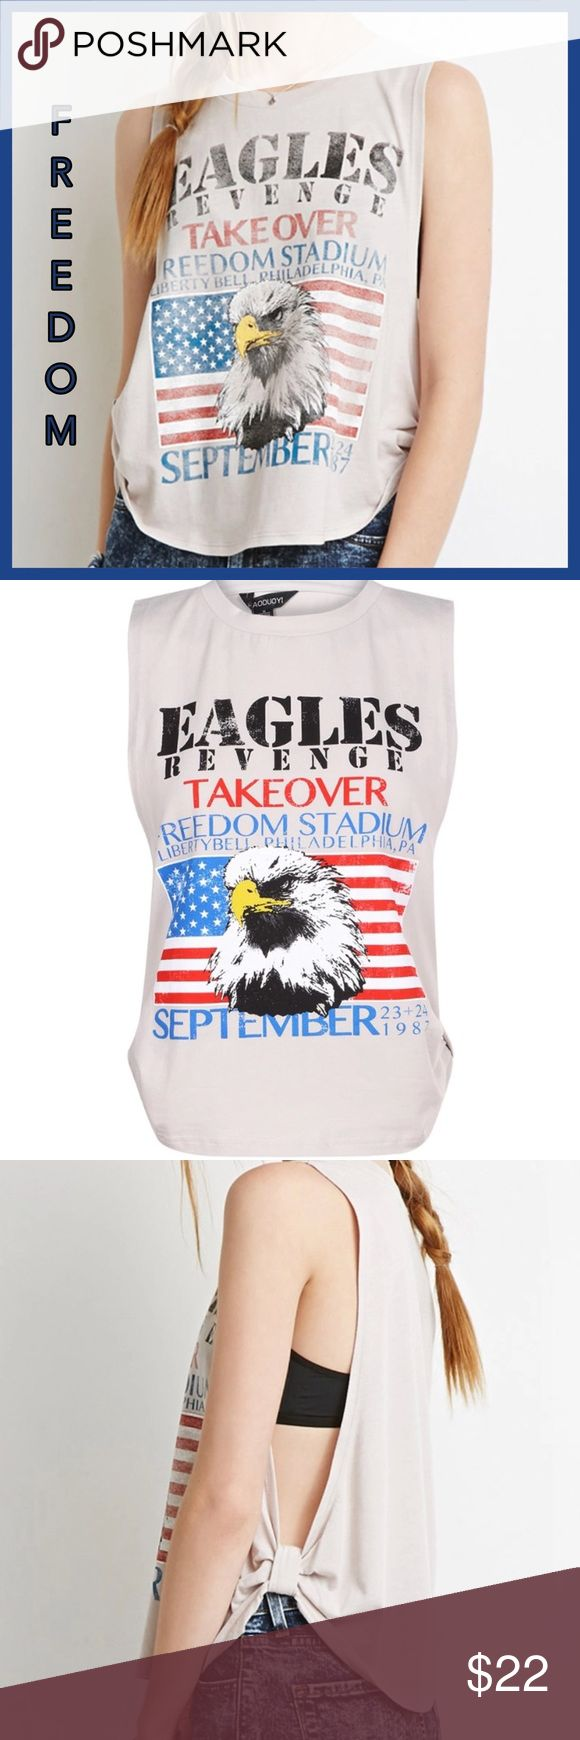 🇺🇸 Eagles Revenge Open Workout Tee🇺🇸 This Tee is so soft and comfy and light weight. With the Eagles winning the Super Bowl this year it is definitely a nice conversation or novelty Tee. A nice addition to your workout attire as well. Can be worn over a bandeau or swimsuit top. I really like how the bottom sides of this shirt come together. 95% Cotton to 5%Spandex. Has a wicking feel to it. Runs slightly small. I normally wear medium to large but the XL fits me perfect. Size up is best…